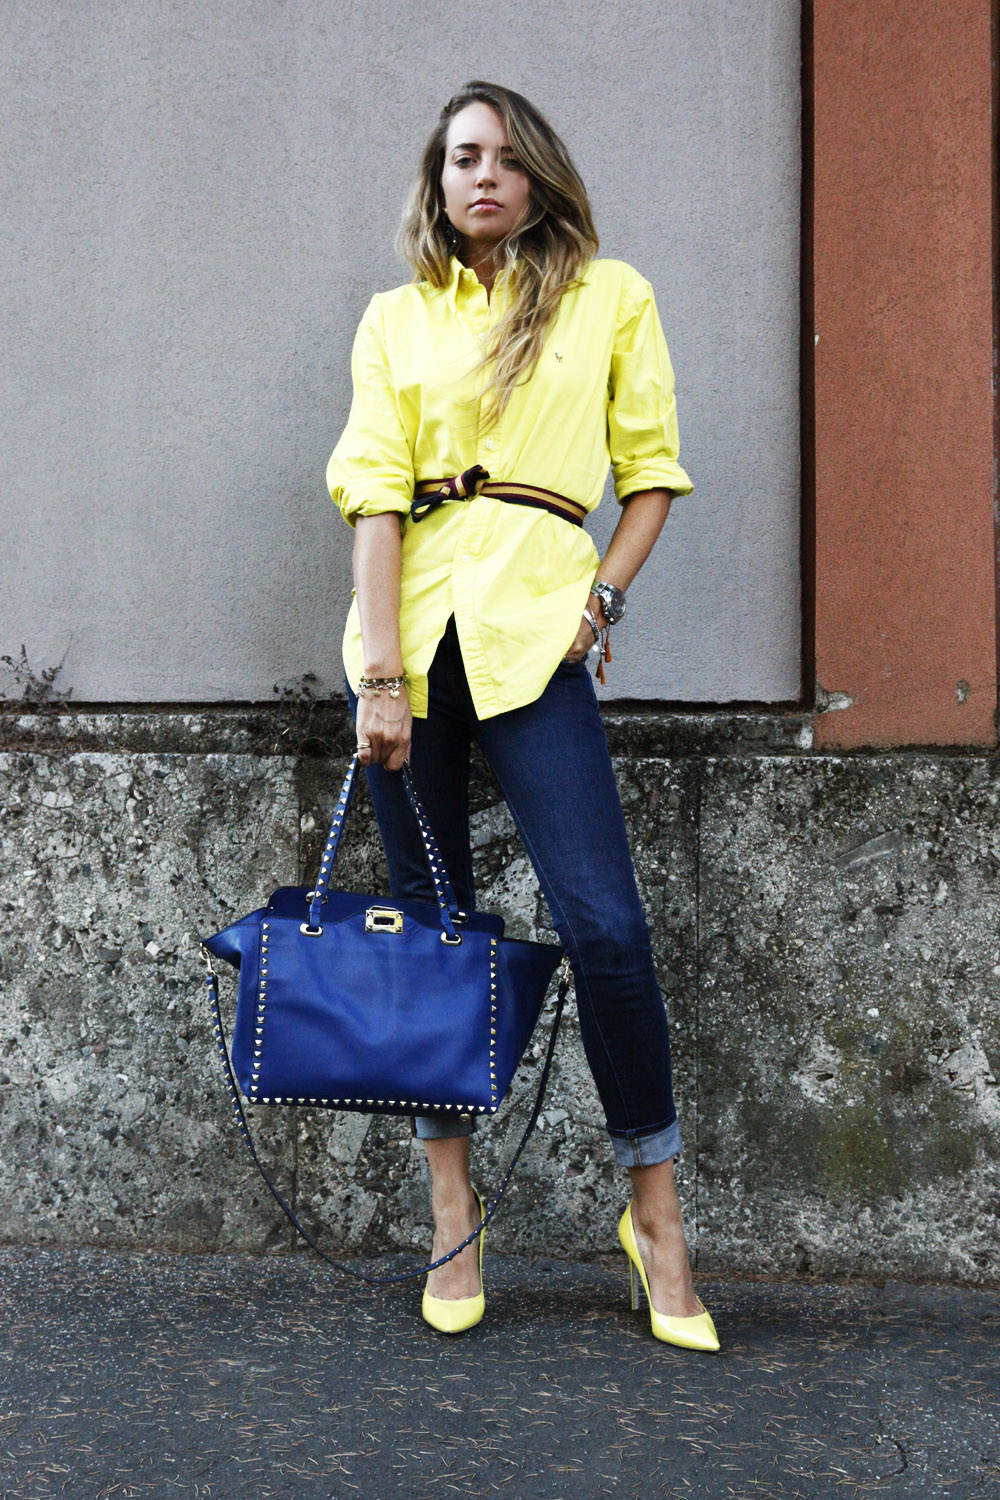 ralph lauren yellow shirt